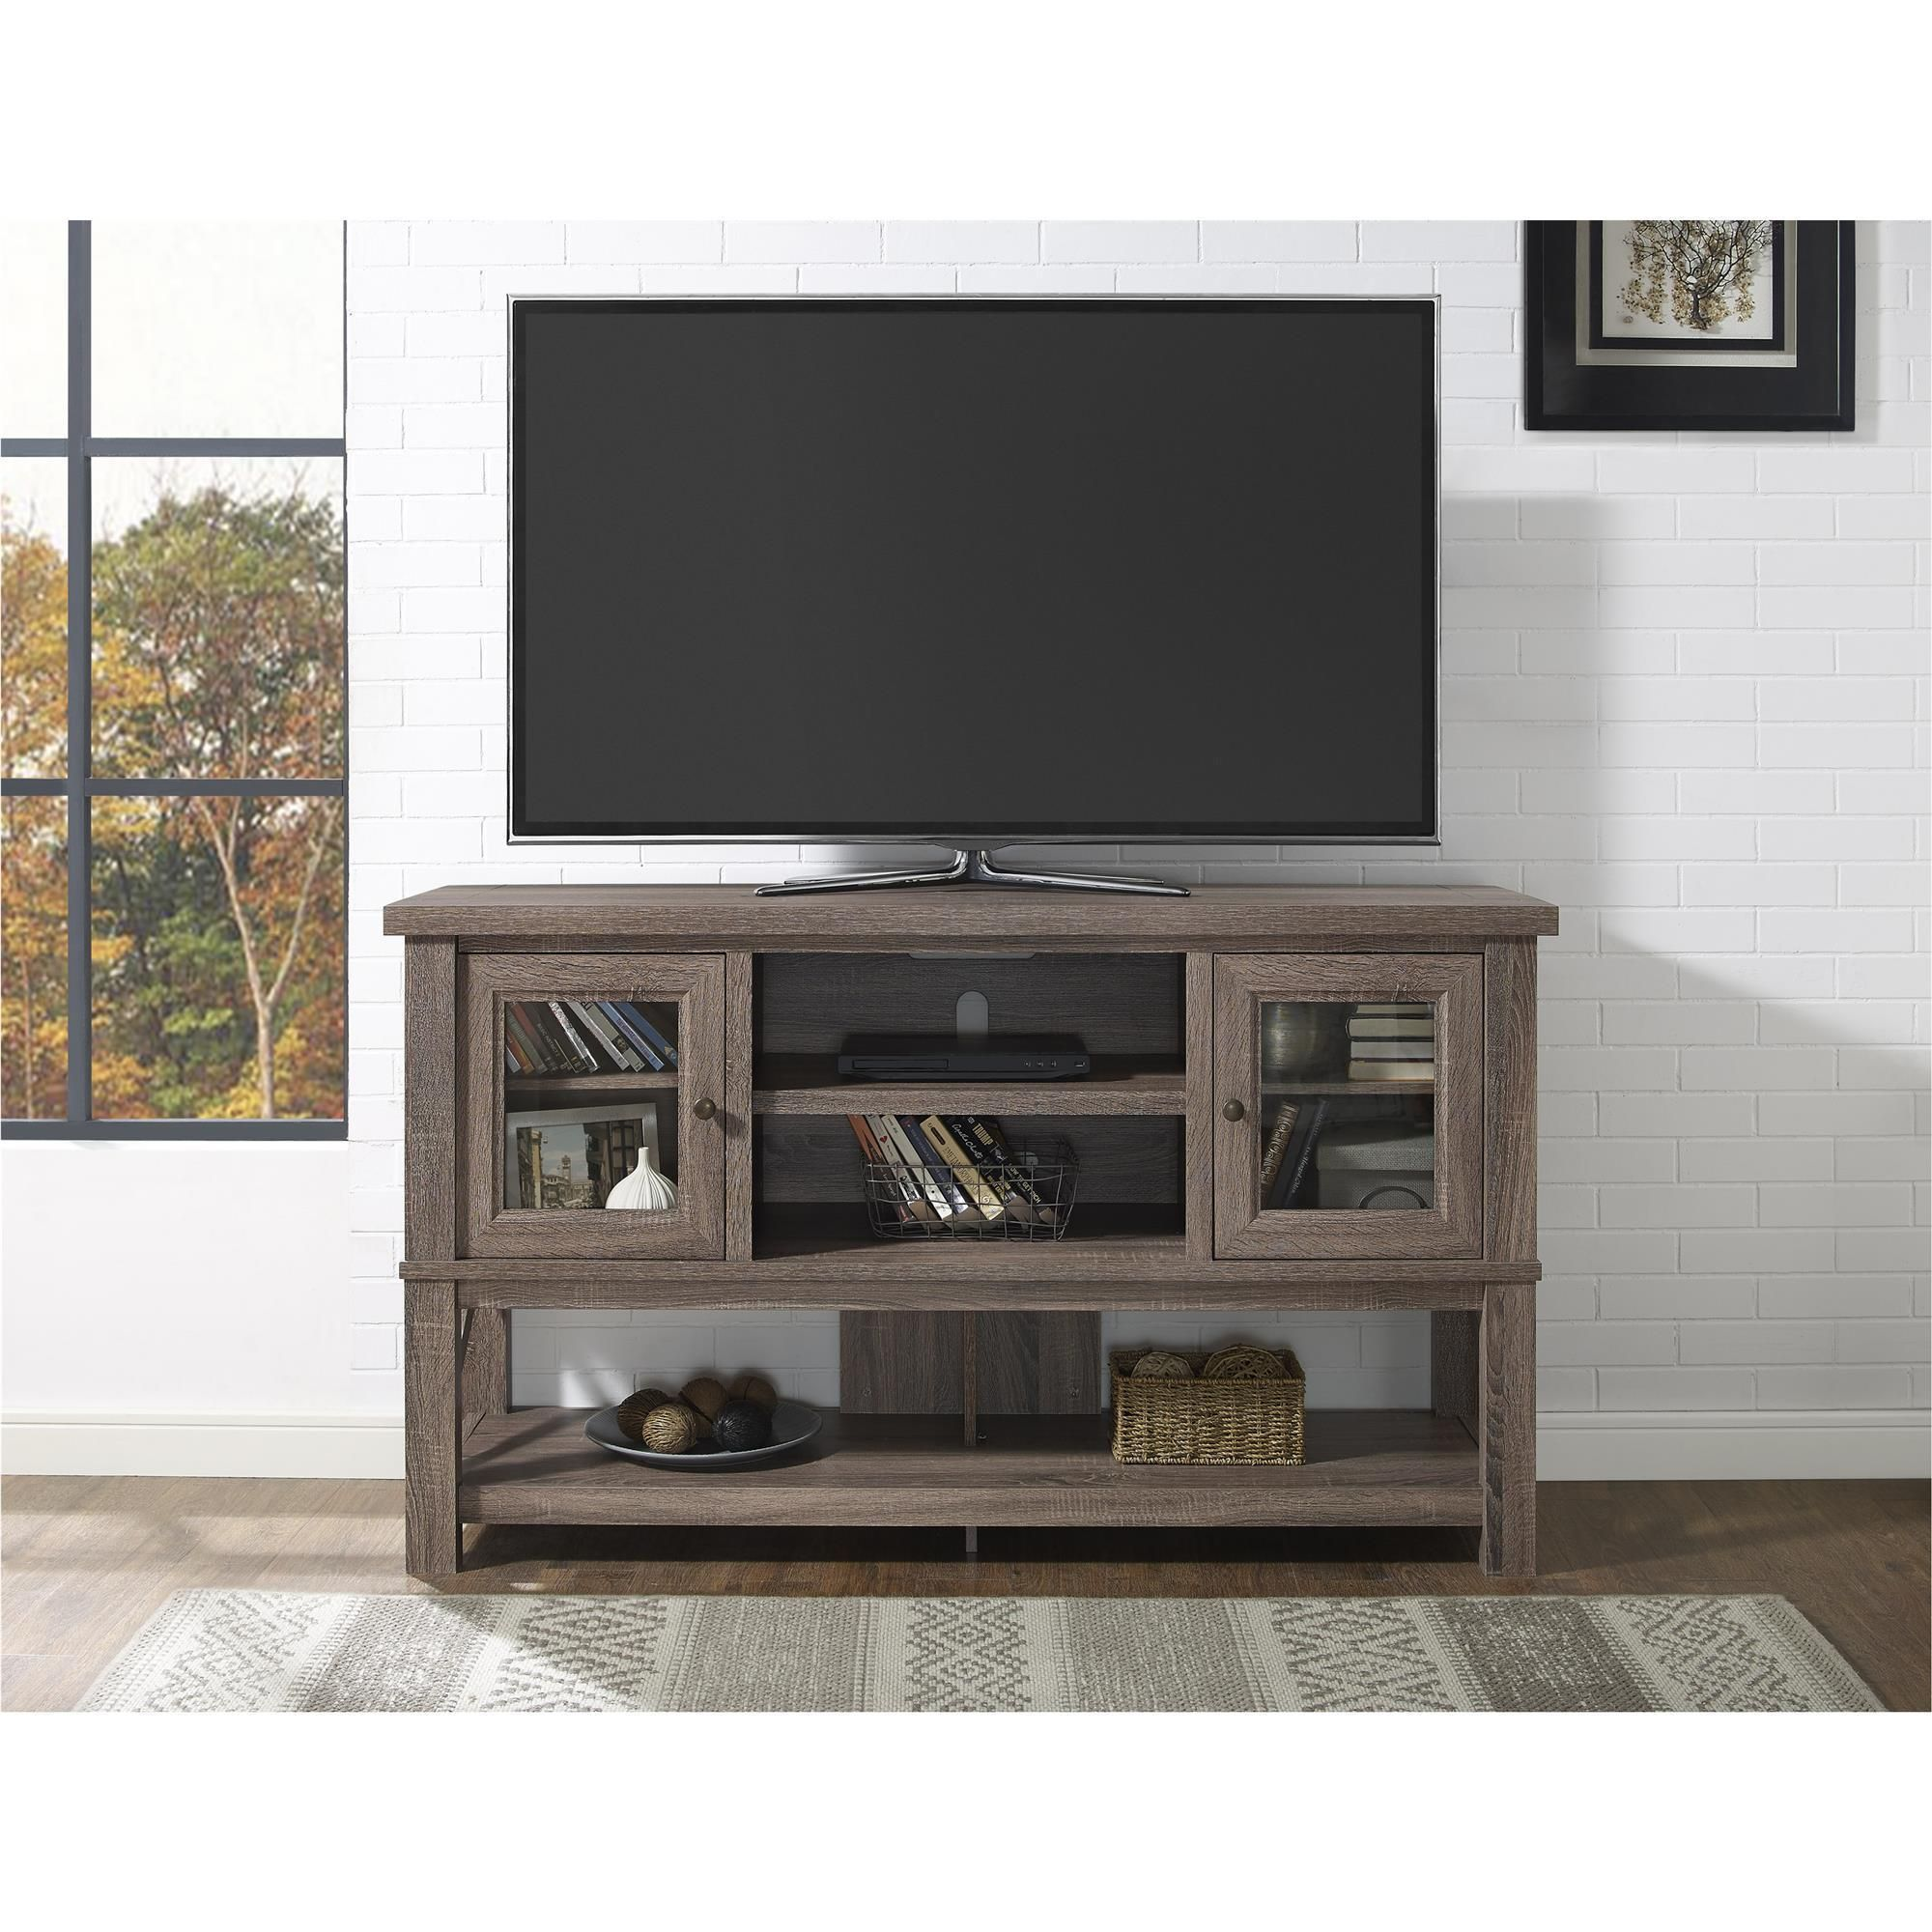 Ameriwood Home Everett 70 Inch Sonoma Oak TV Stand With Glass Doors (TV  Stand